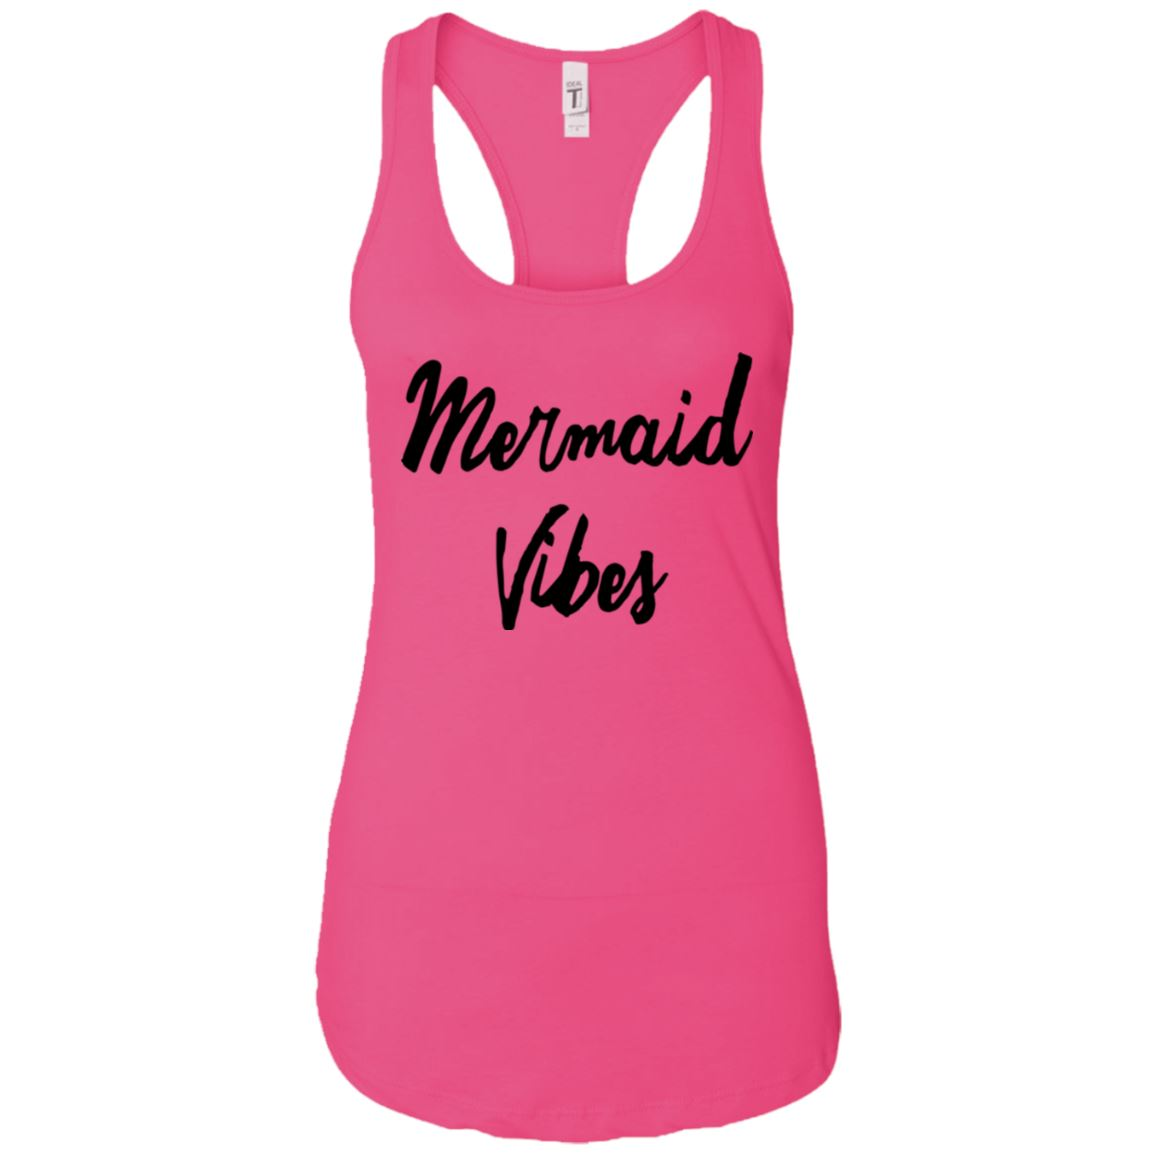 Mermaid Vibes Level Ladies Racerback Tank Mermaid Apparel Raspberry X-Small